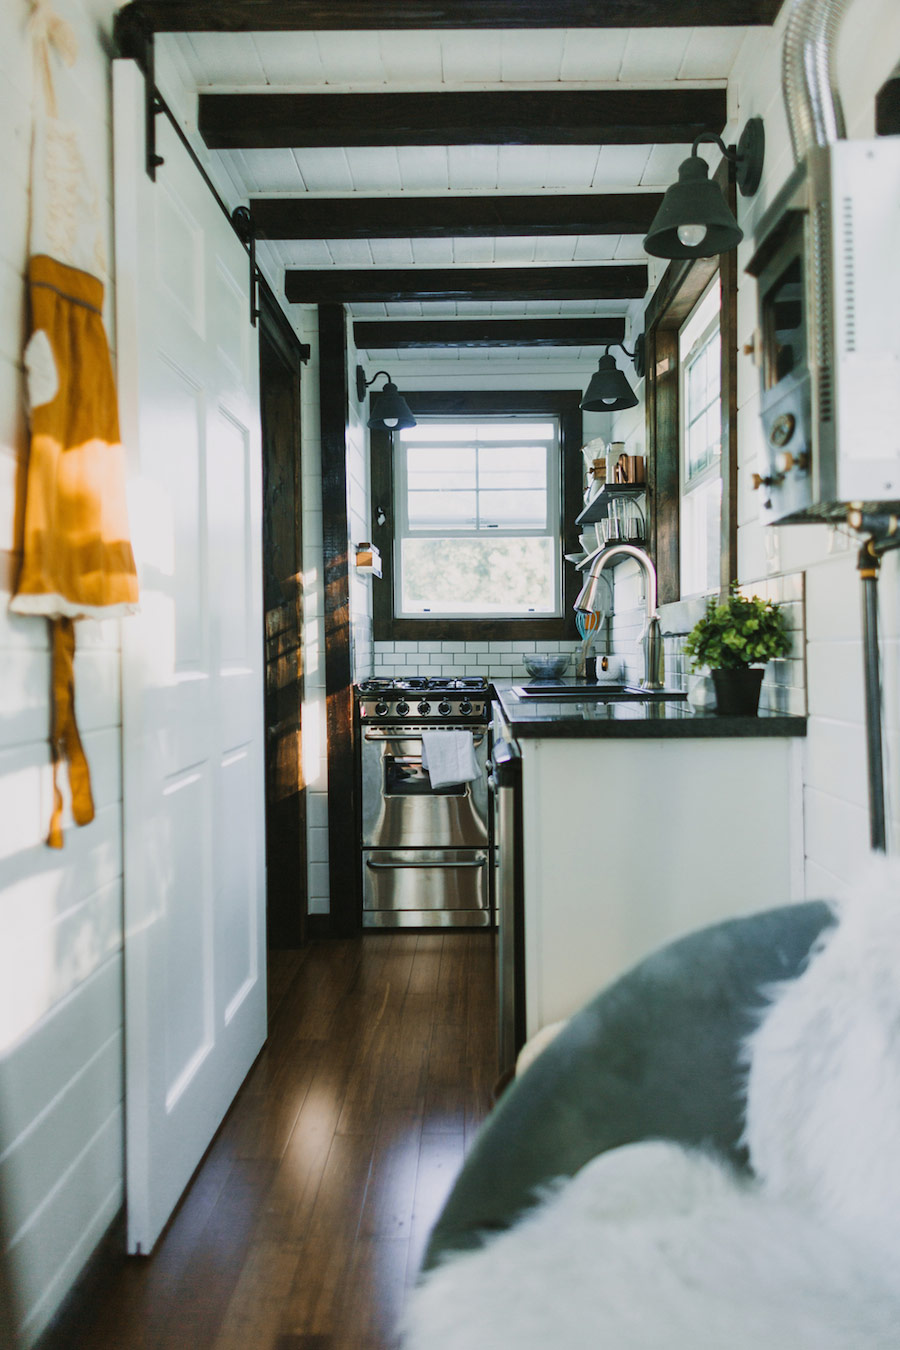 This $40K Tiny Home On Wheels Is Nicer Than Most Apartments